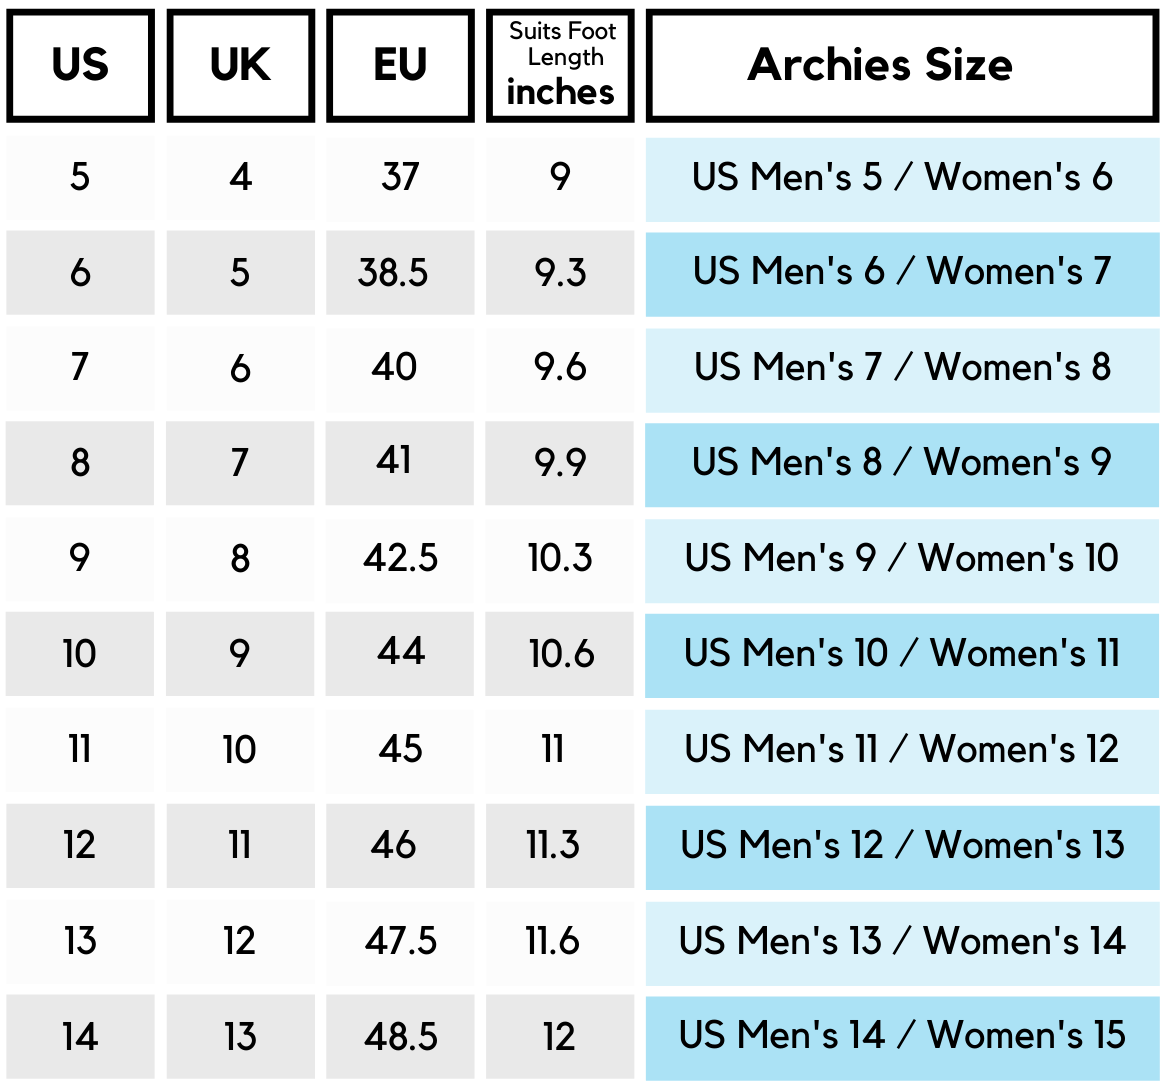 Archies US Men's Size Chart